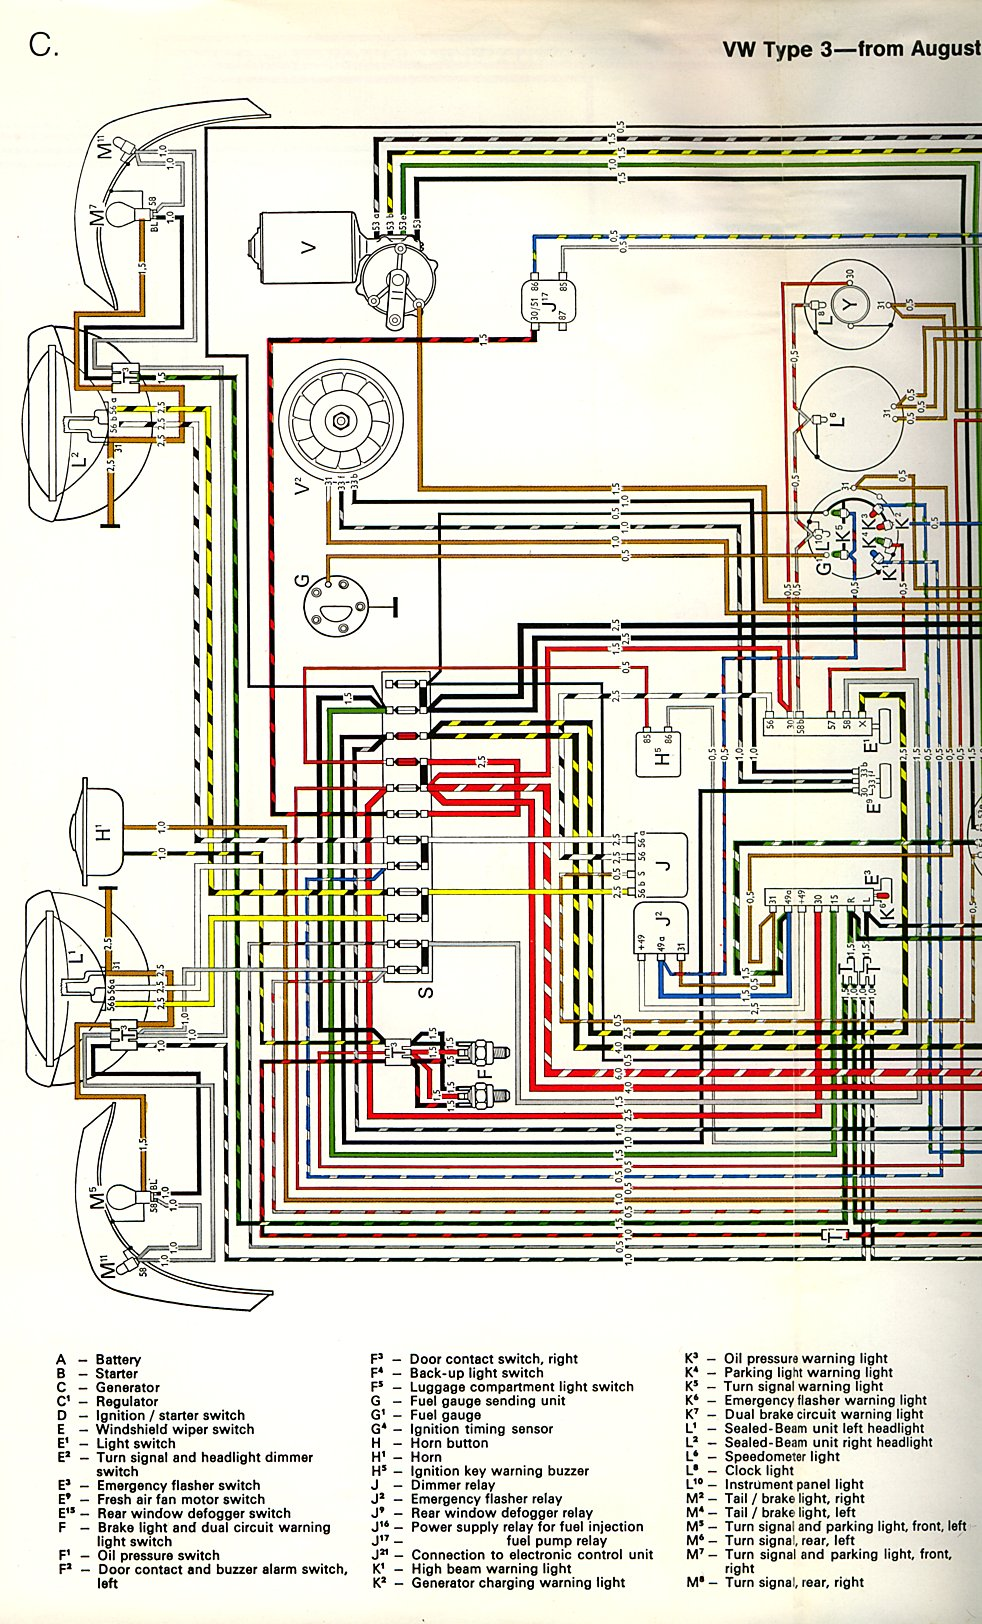 71 Vw Type 3 Wiring Diagram Opinions About Wiring Diagram \u2022 2001  Volkswagen Beetle Wiring Diagram 72 Vw Beetle Wiring Diagram